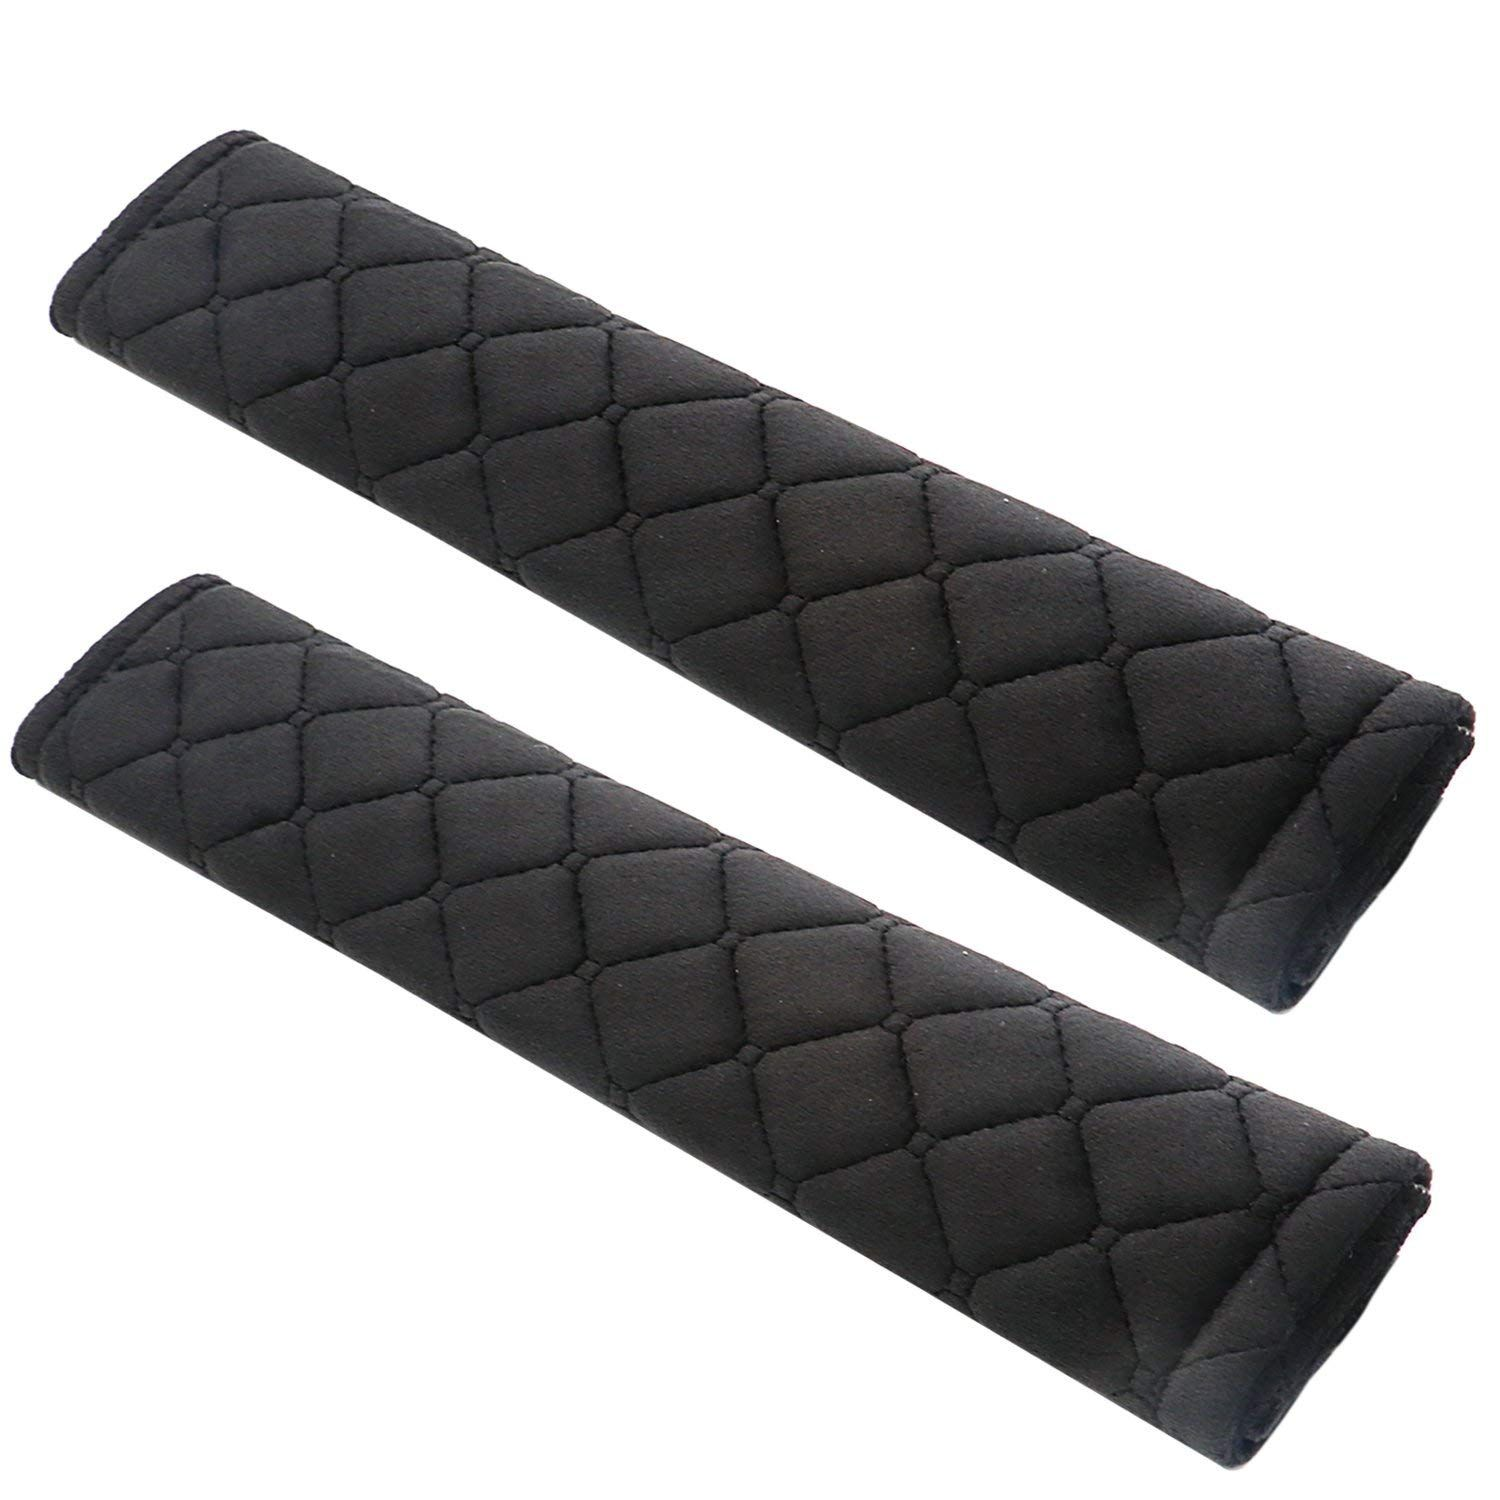 2x Padded Car Seat Belt Pads Comfortable Harness Safety Shoulder Pads Cushion